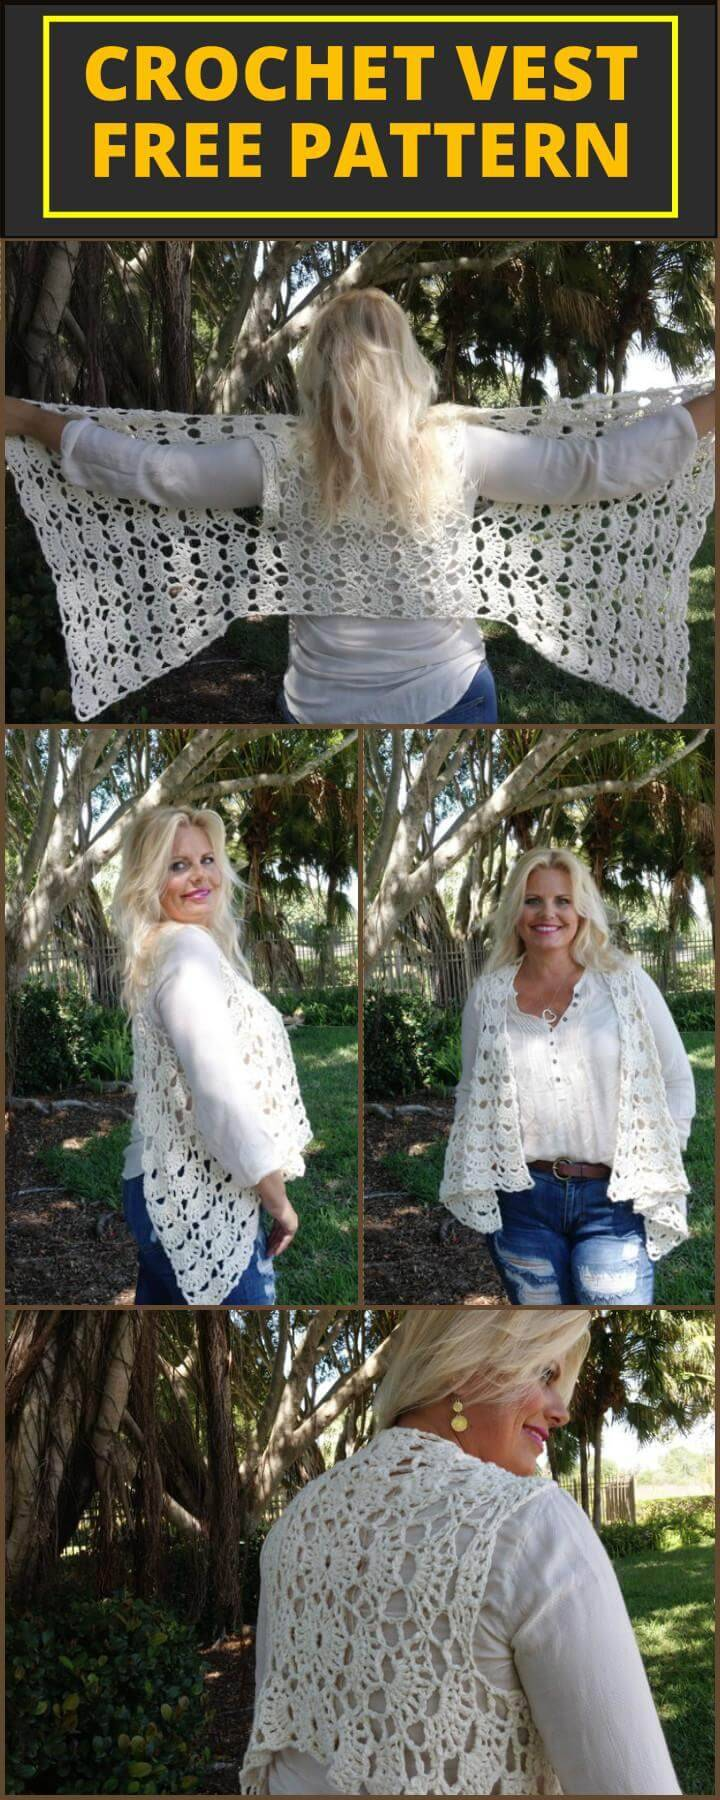 Stylish Crochet Vest Free Pattern